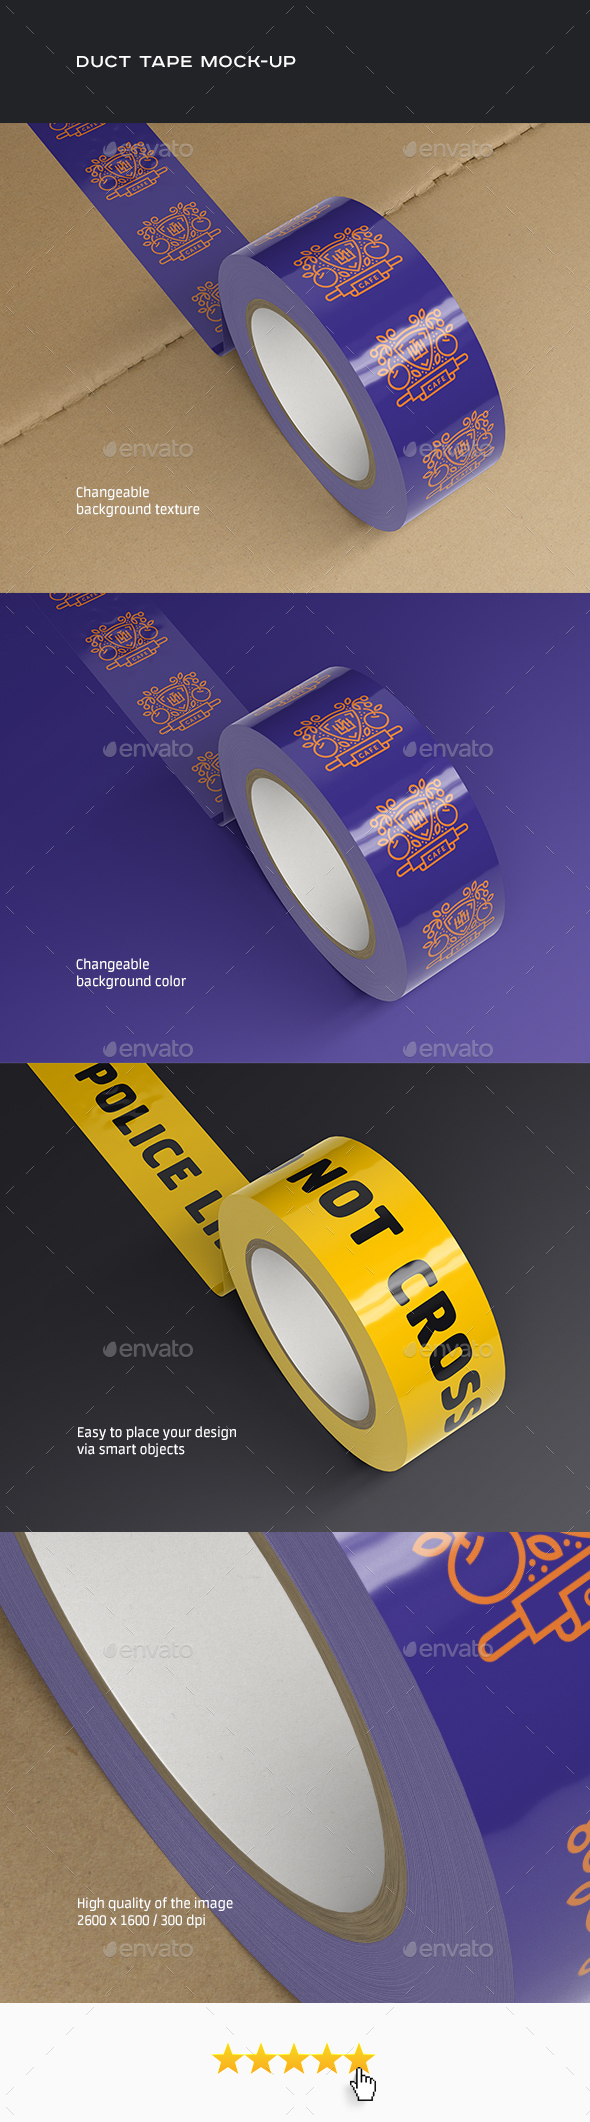 Duct Tape Mock-up (Stationery)